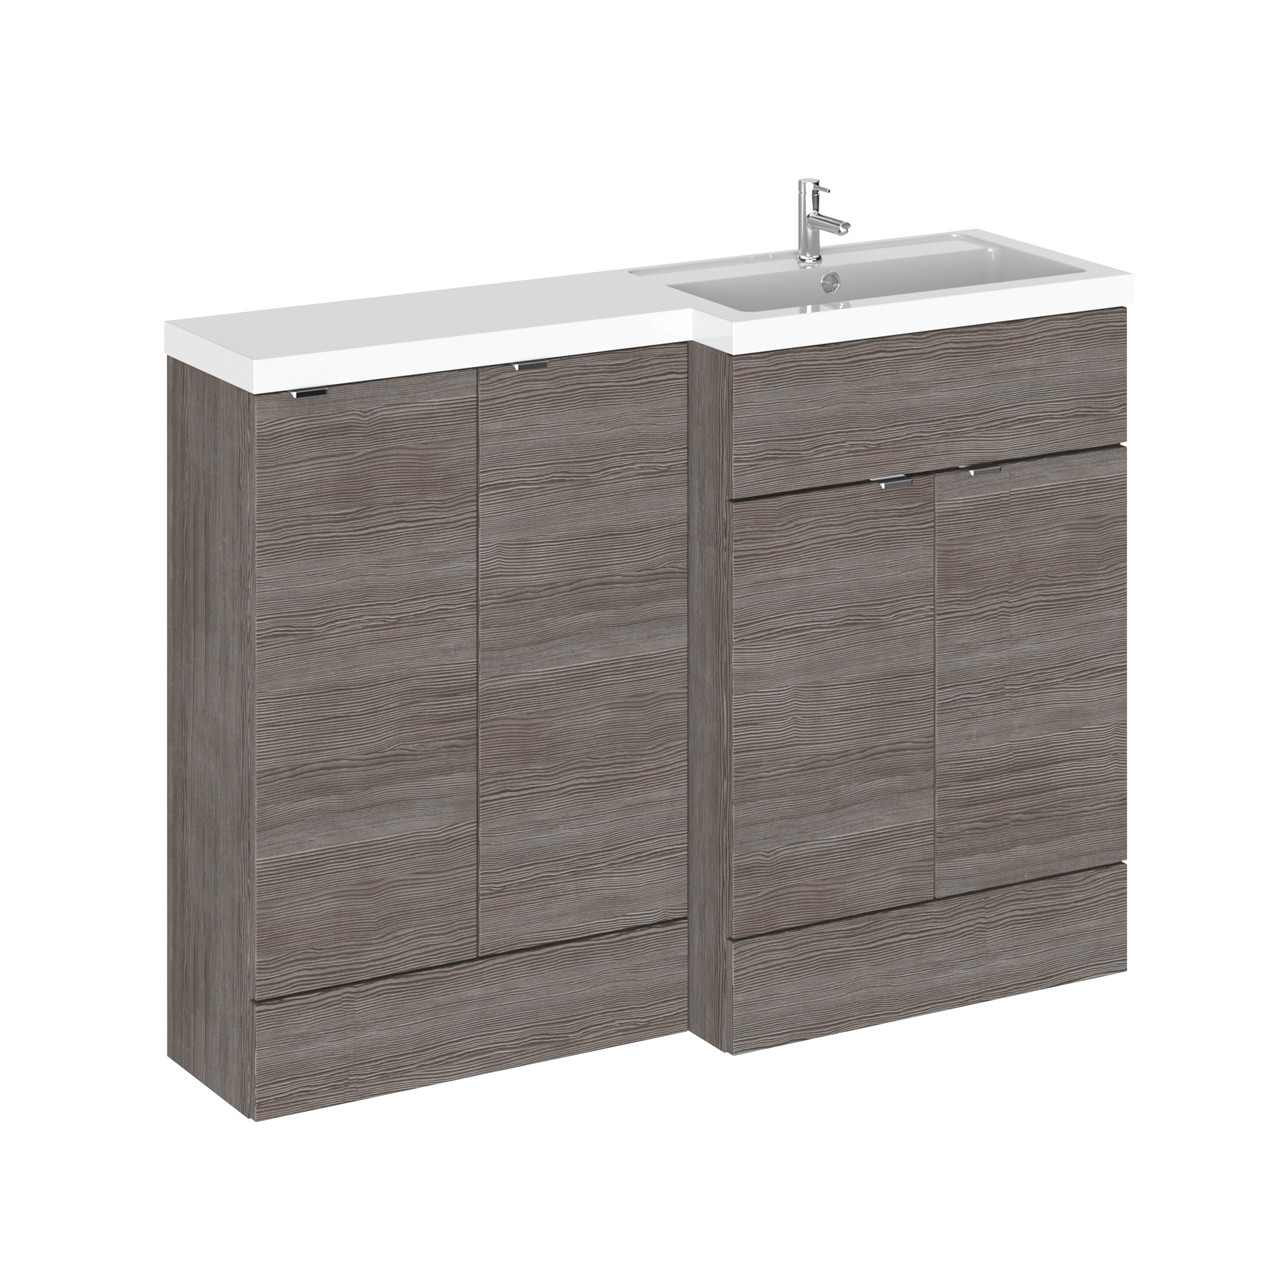 Hudson Reed Grey Avola 1200mm Full Depth Combination Vanity & Storage Unit with Right Hand Basin - CBI512